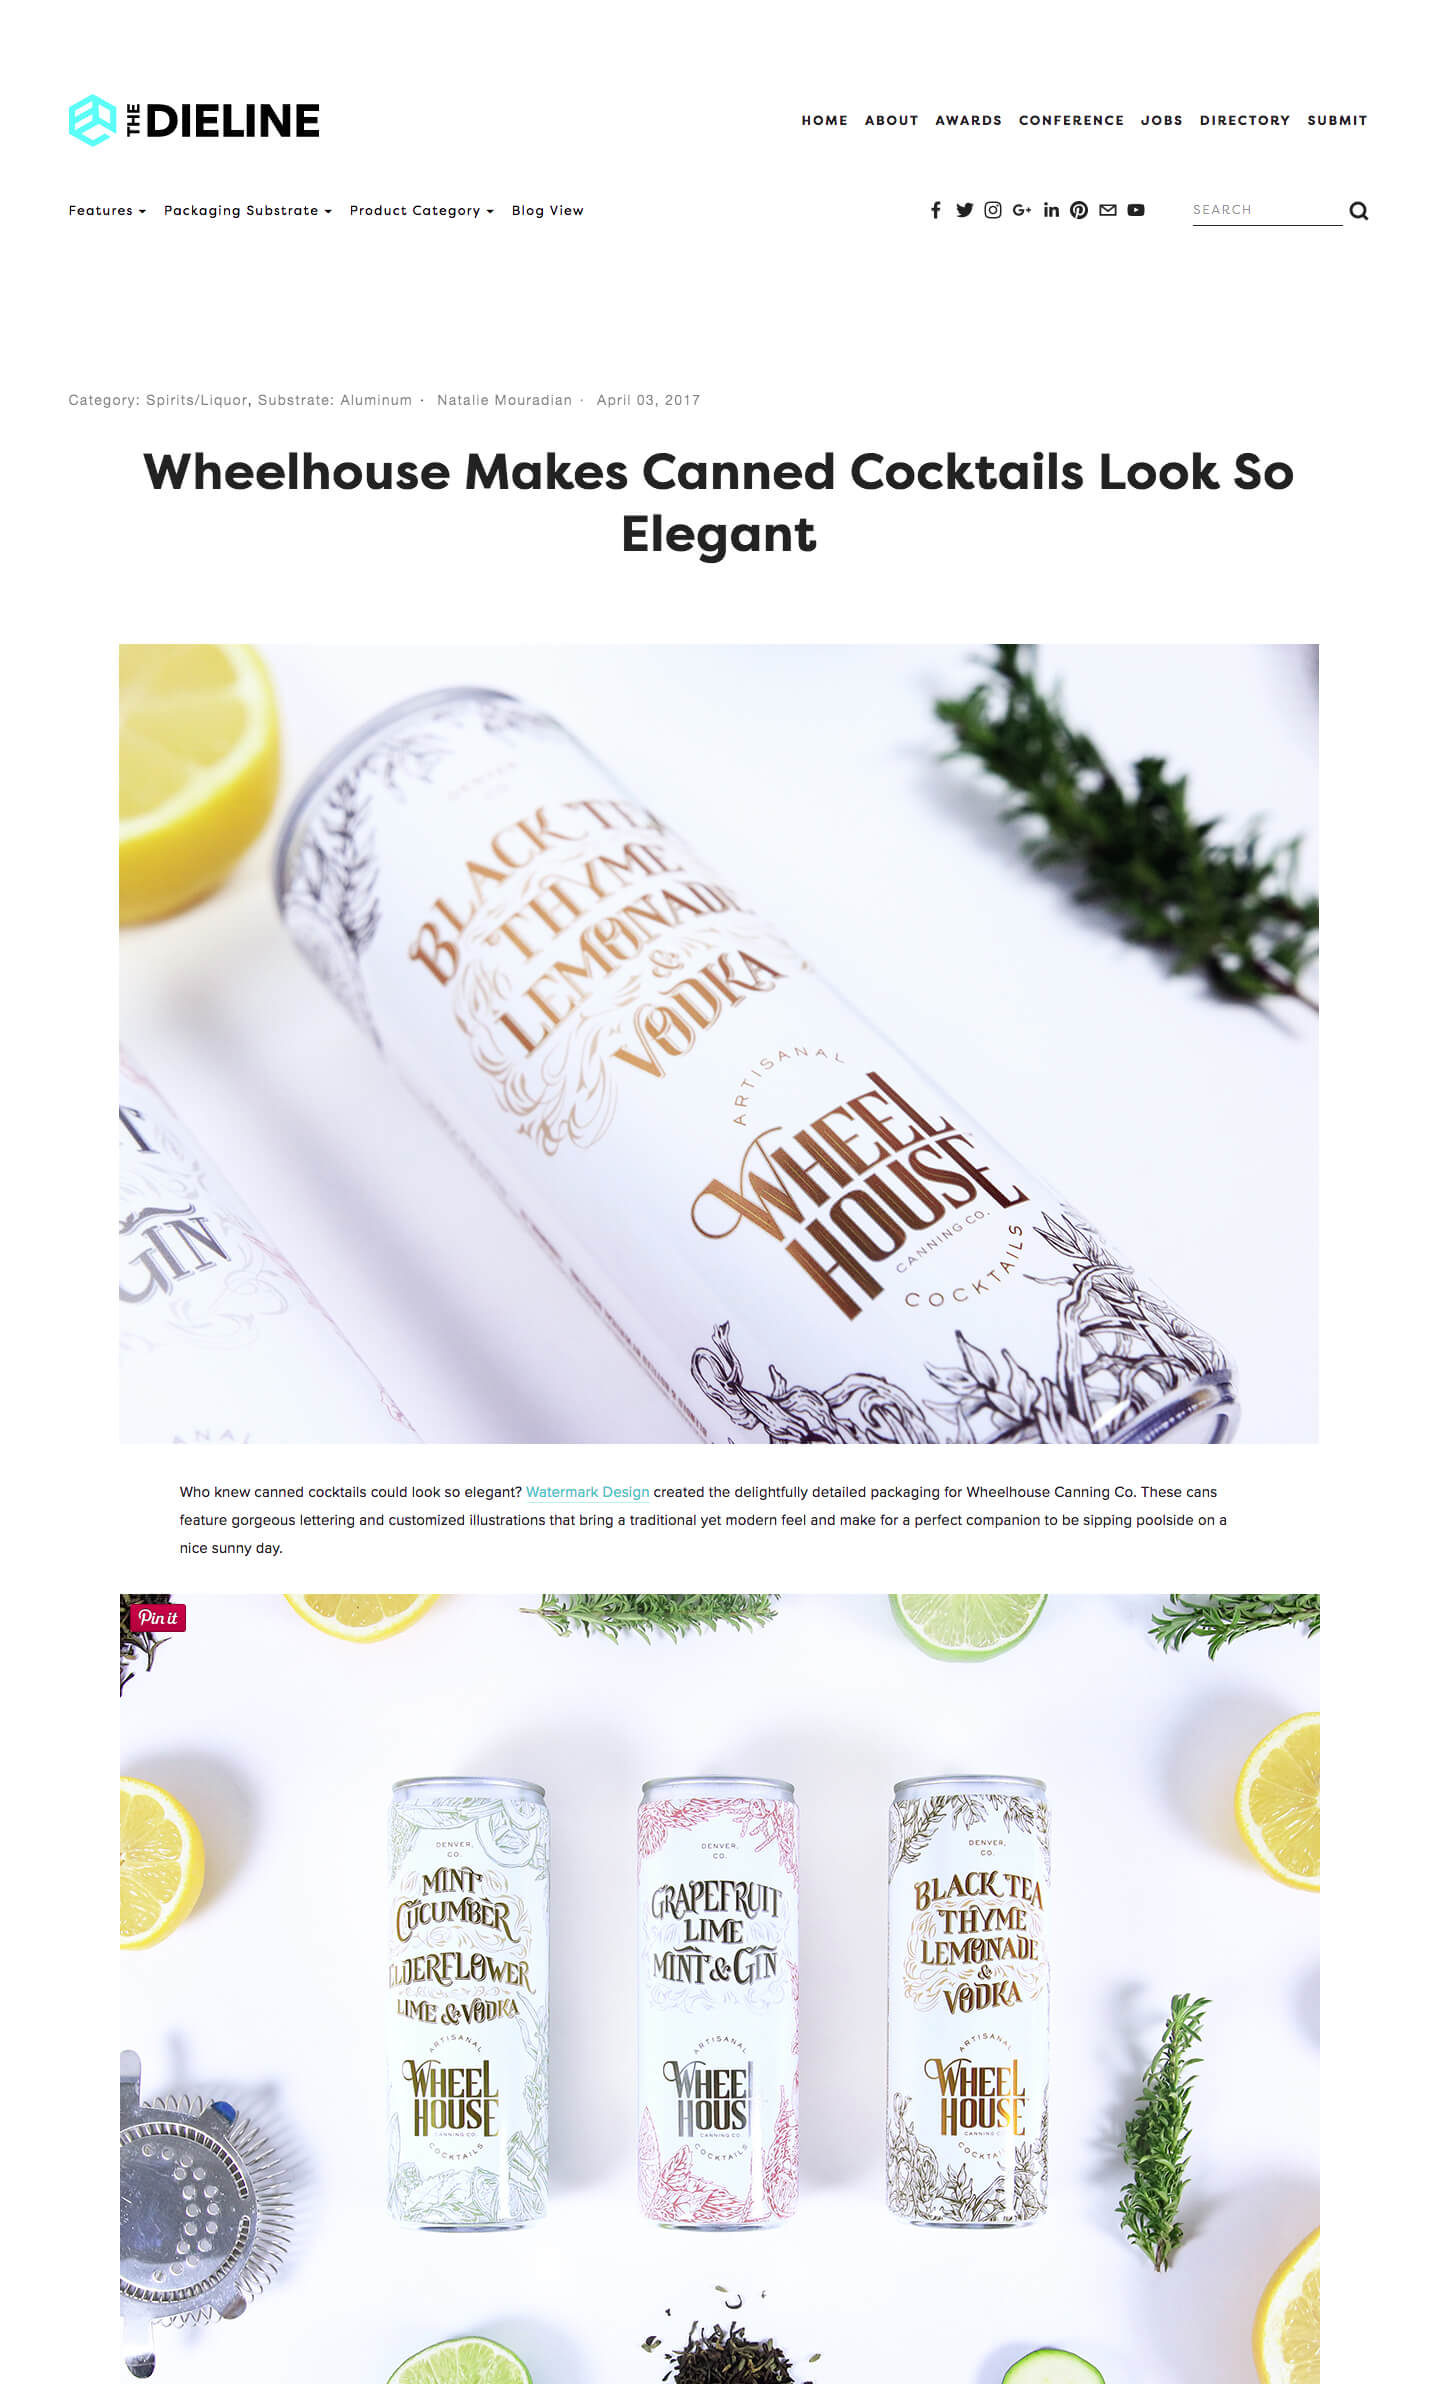 Wheelhouse Canned Cocktails Dieline Debut